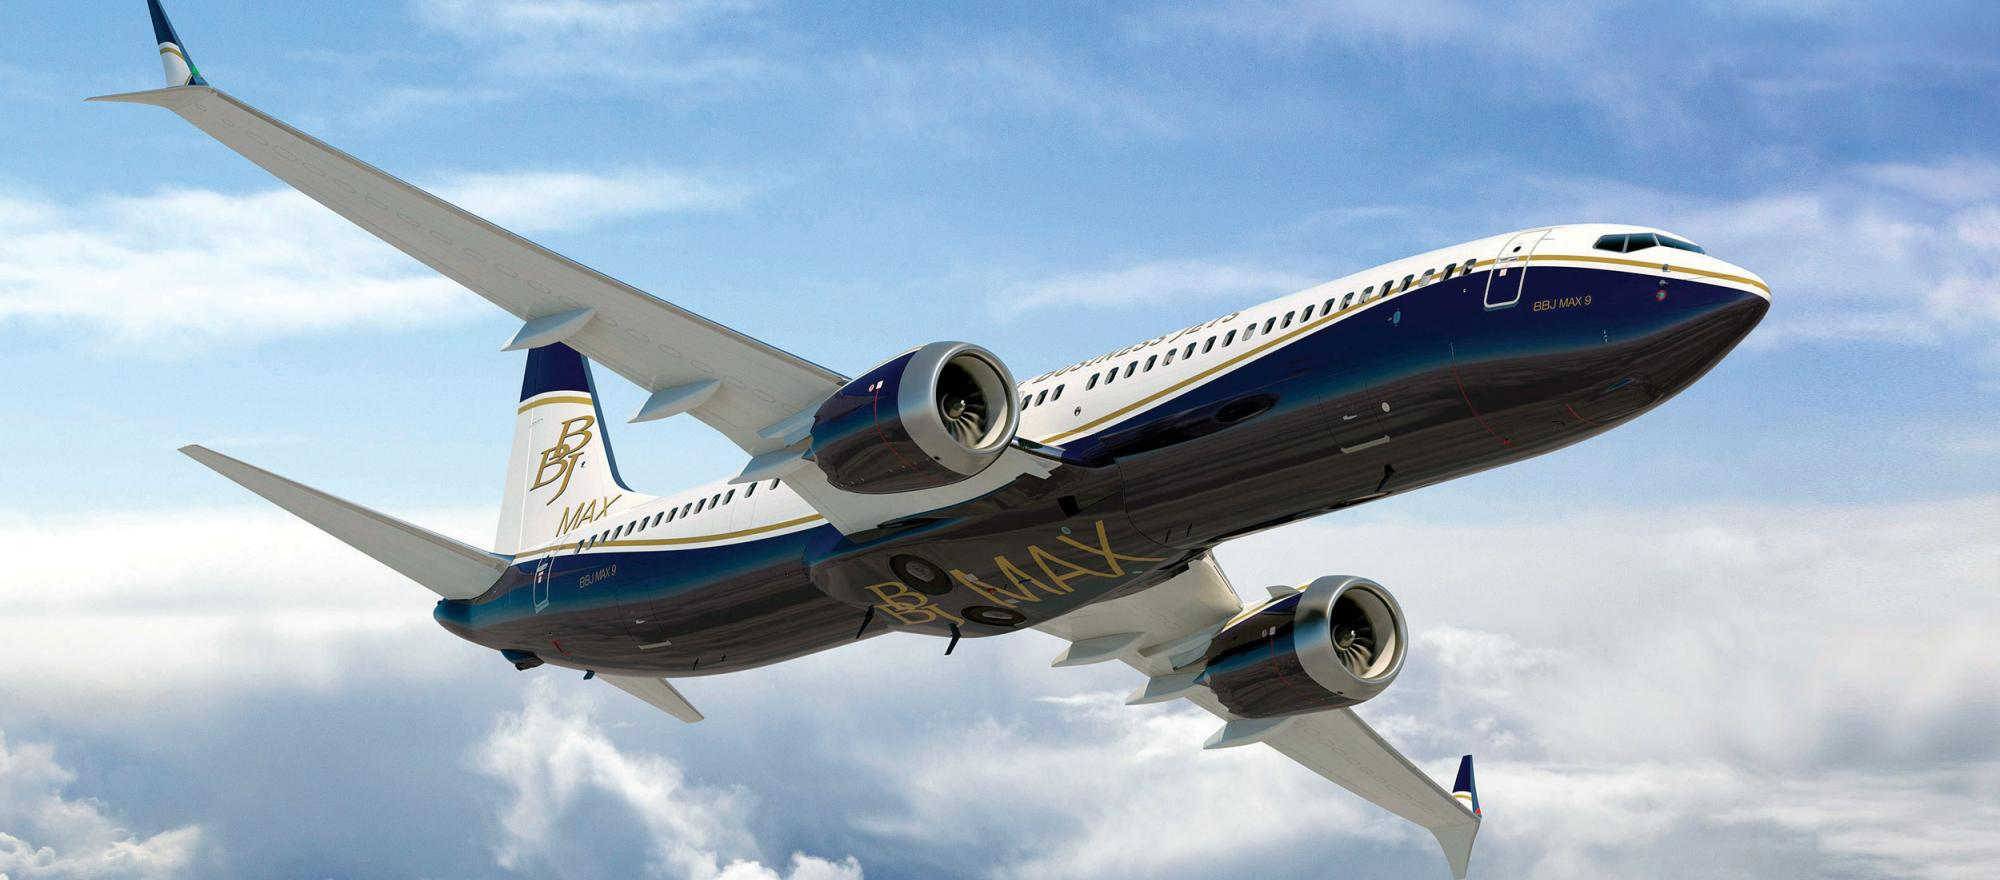 The BBJ Max 9 will offer a 6,255-nautical-mile range, a 16.2 percent jump from the BBJ3.